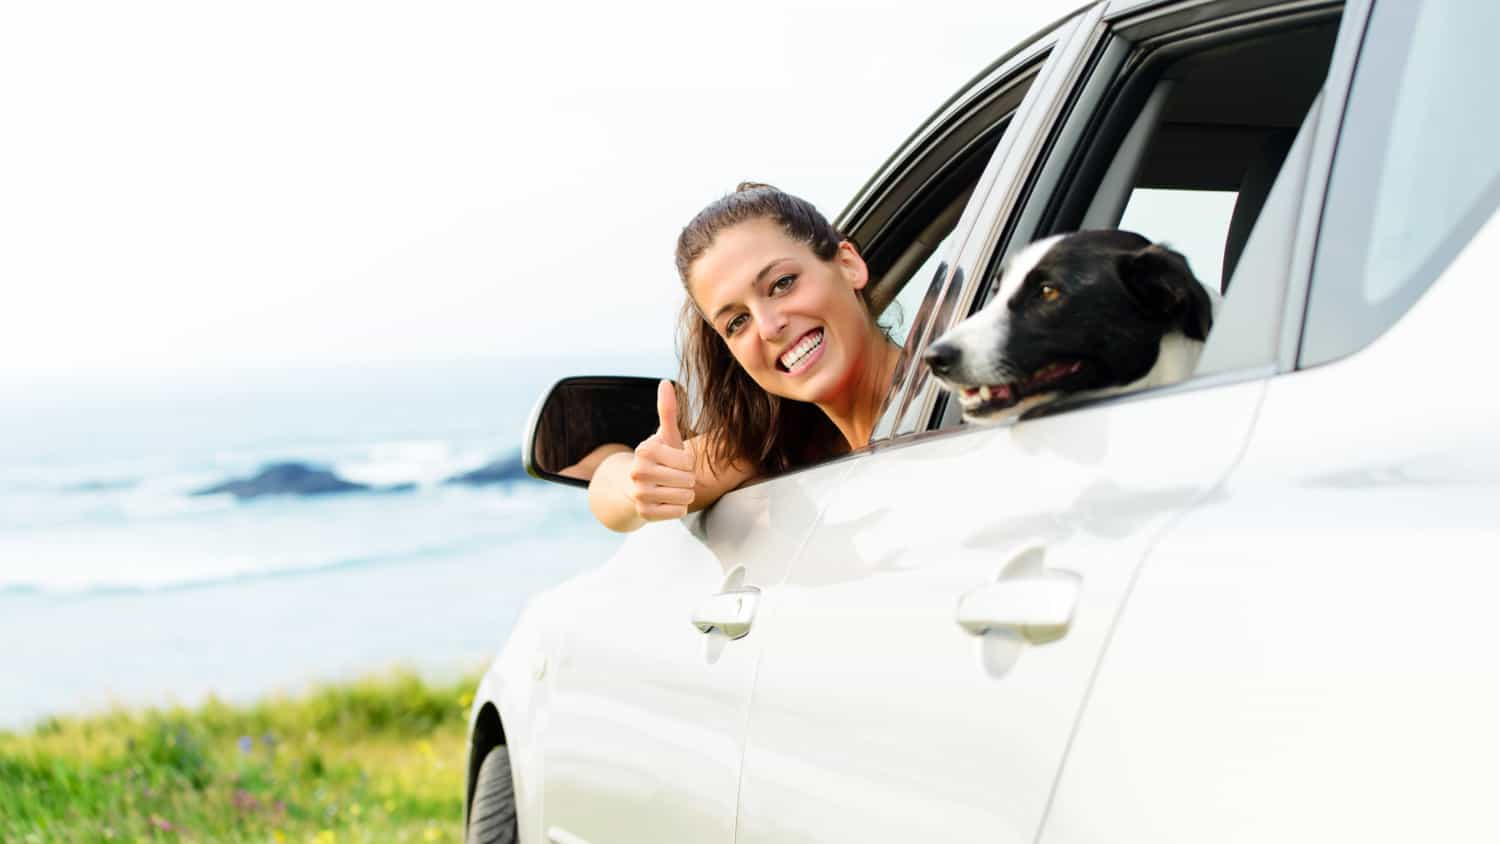 Happy woman traveling in car with dog. Coast landscape background.